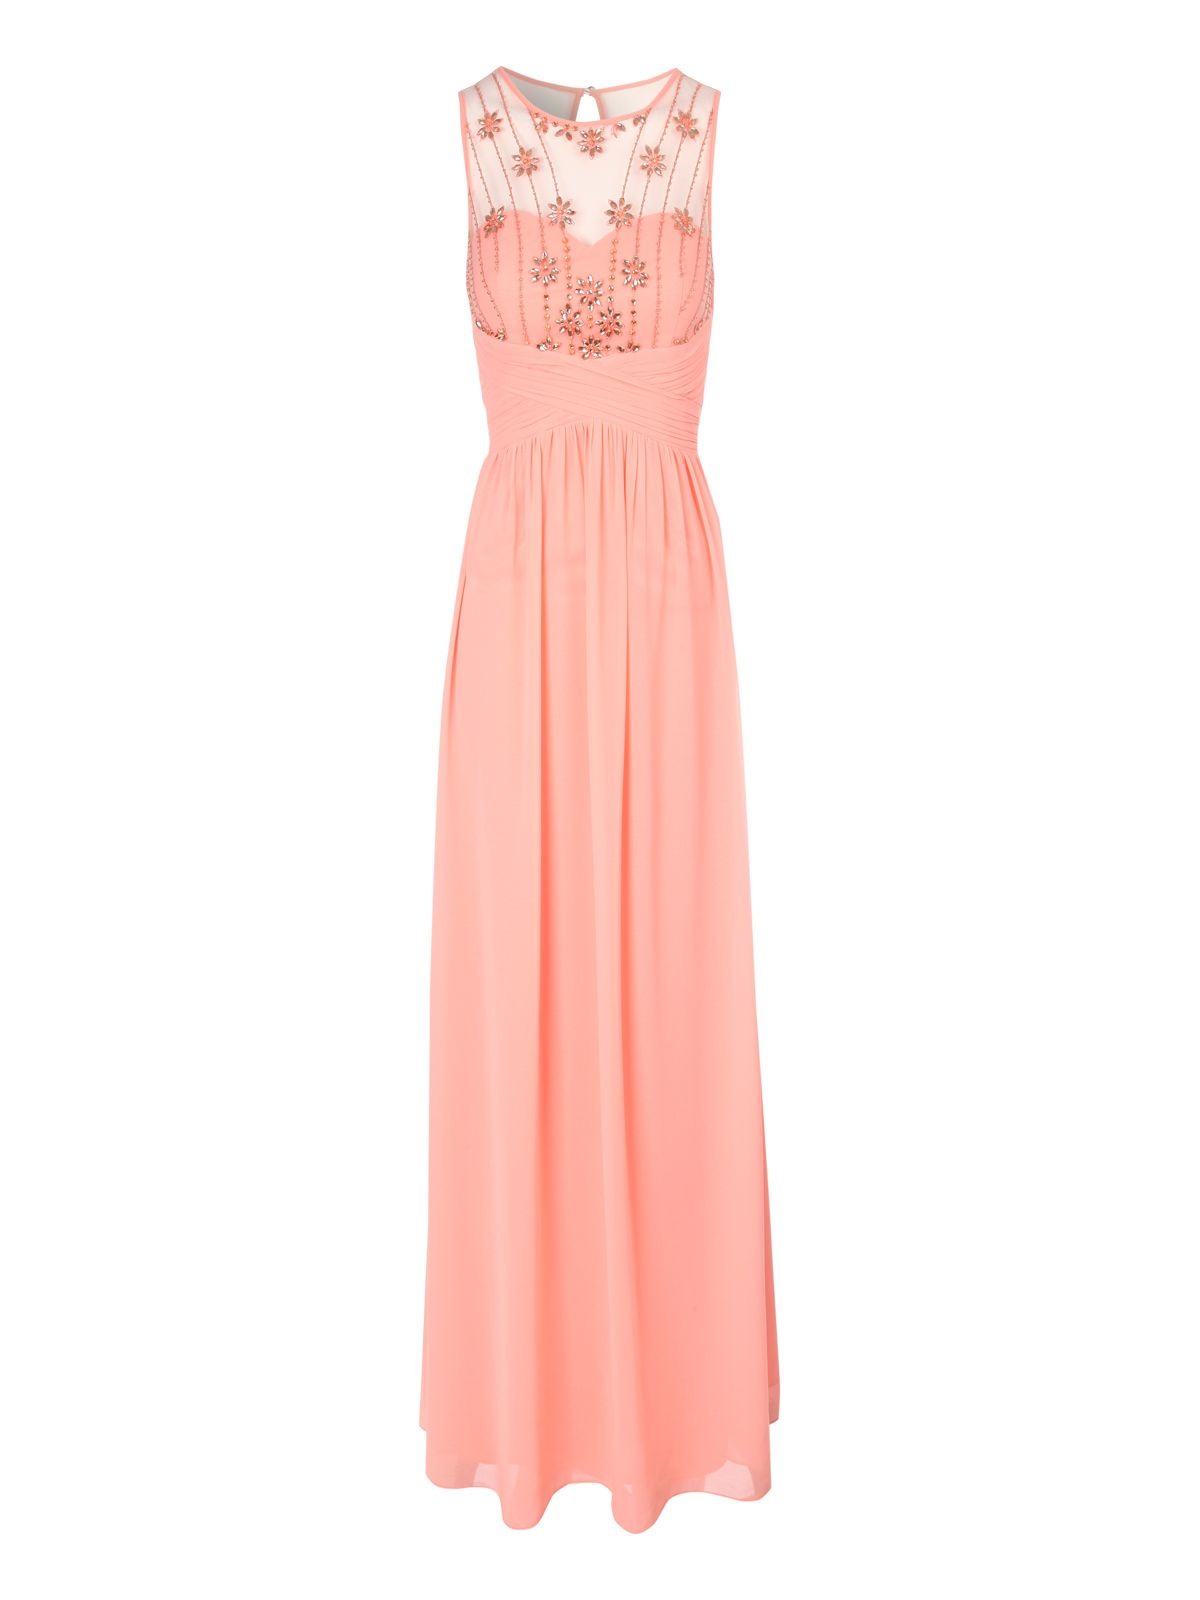 Daisy embellished maxi dress